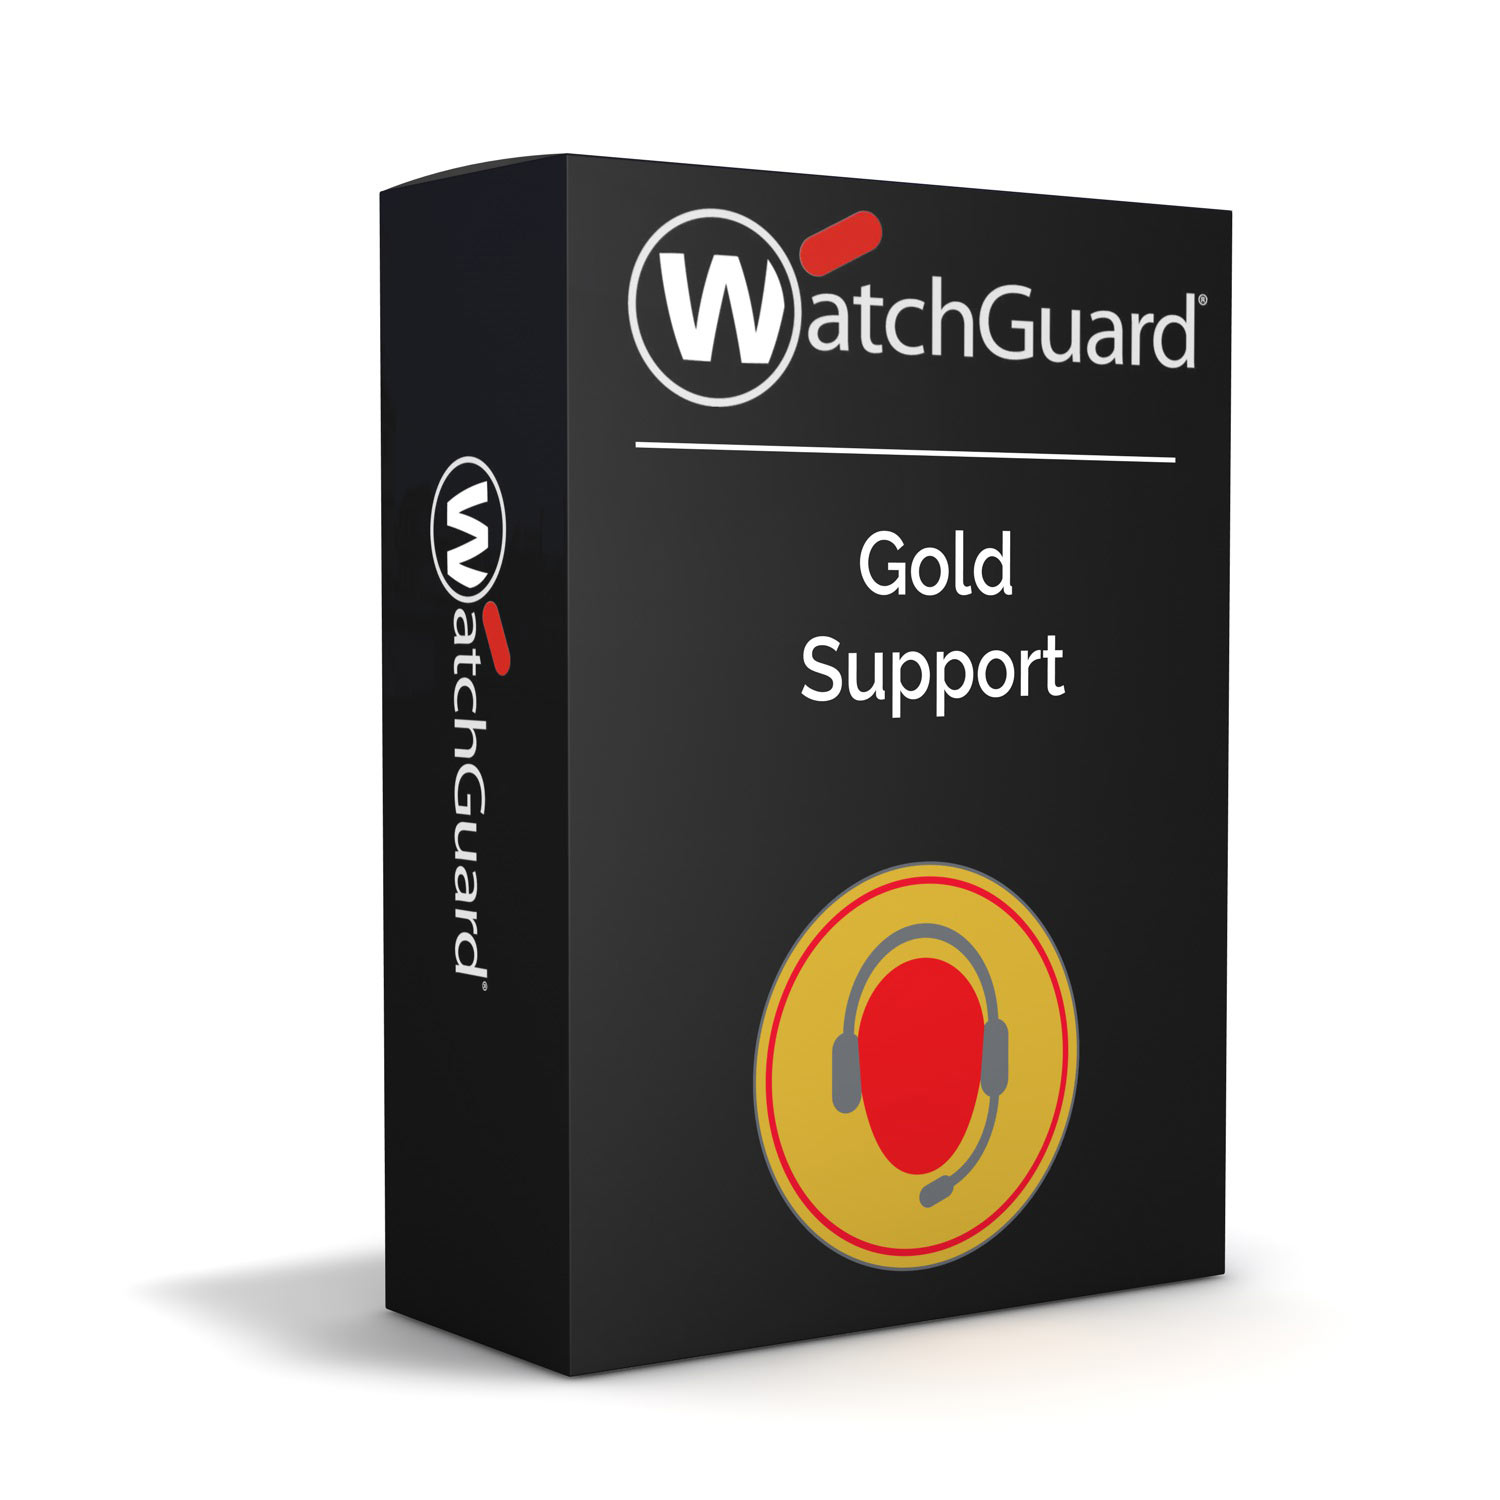 WatchGuard Gold Support Renewal/Upgrade 3-yr for Firebox T15